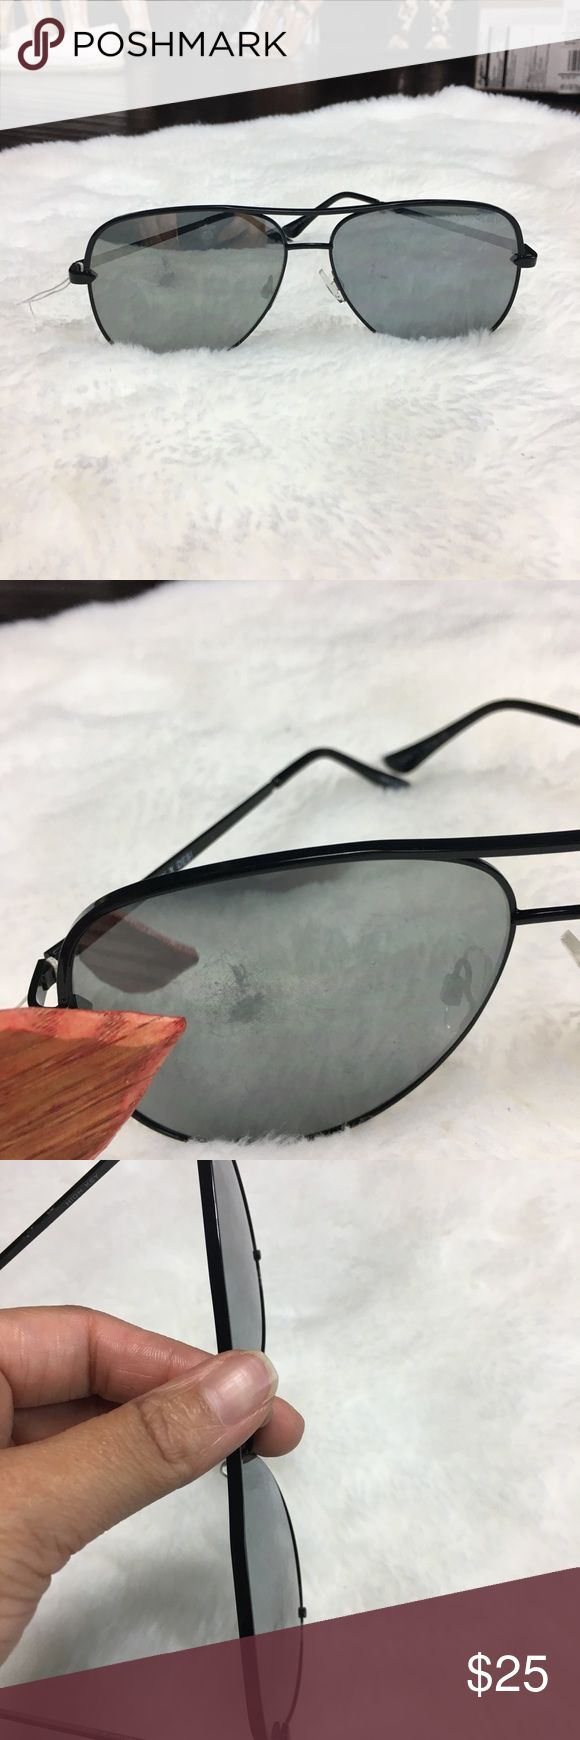 Quay x Desi High Key black aviator sunglasses Good to fair condition. There is a light sign of wear on one of the lens. Not noticeable at first glance unless it hits a certain light. The other lens has light scratches Quay Australia Accessories Sunglasses